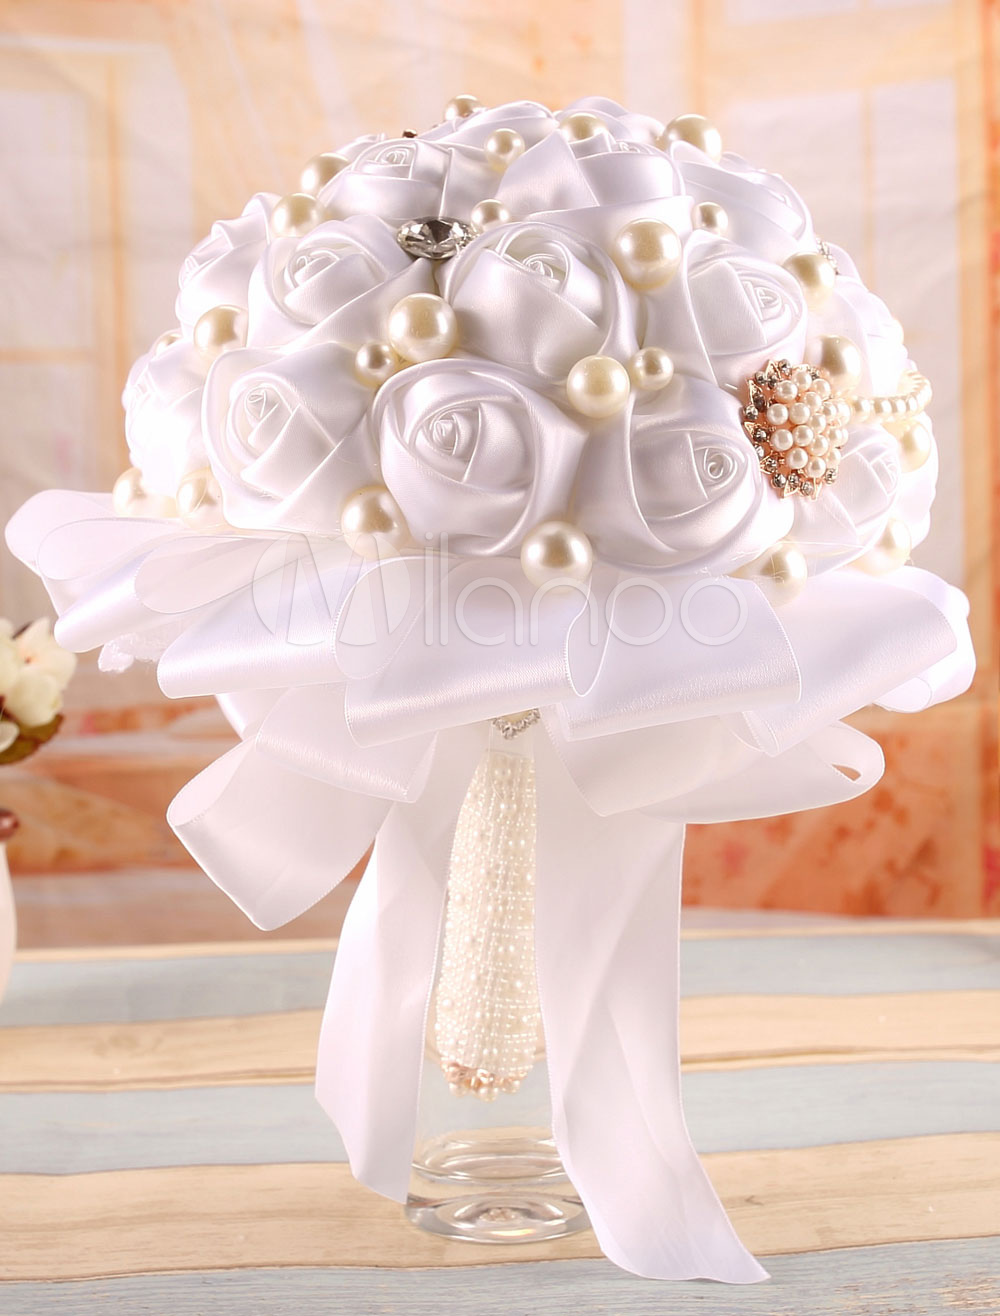 Rhinestone Wedding Flower Pearl Studded White Satin Bouquet ( 25 Cm X 18 Cm)